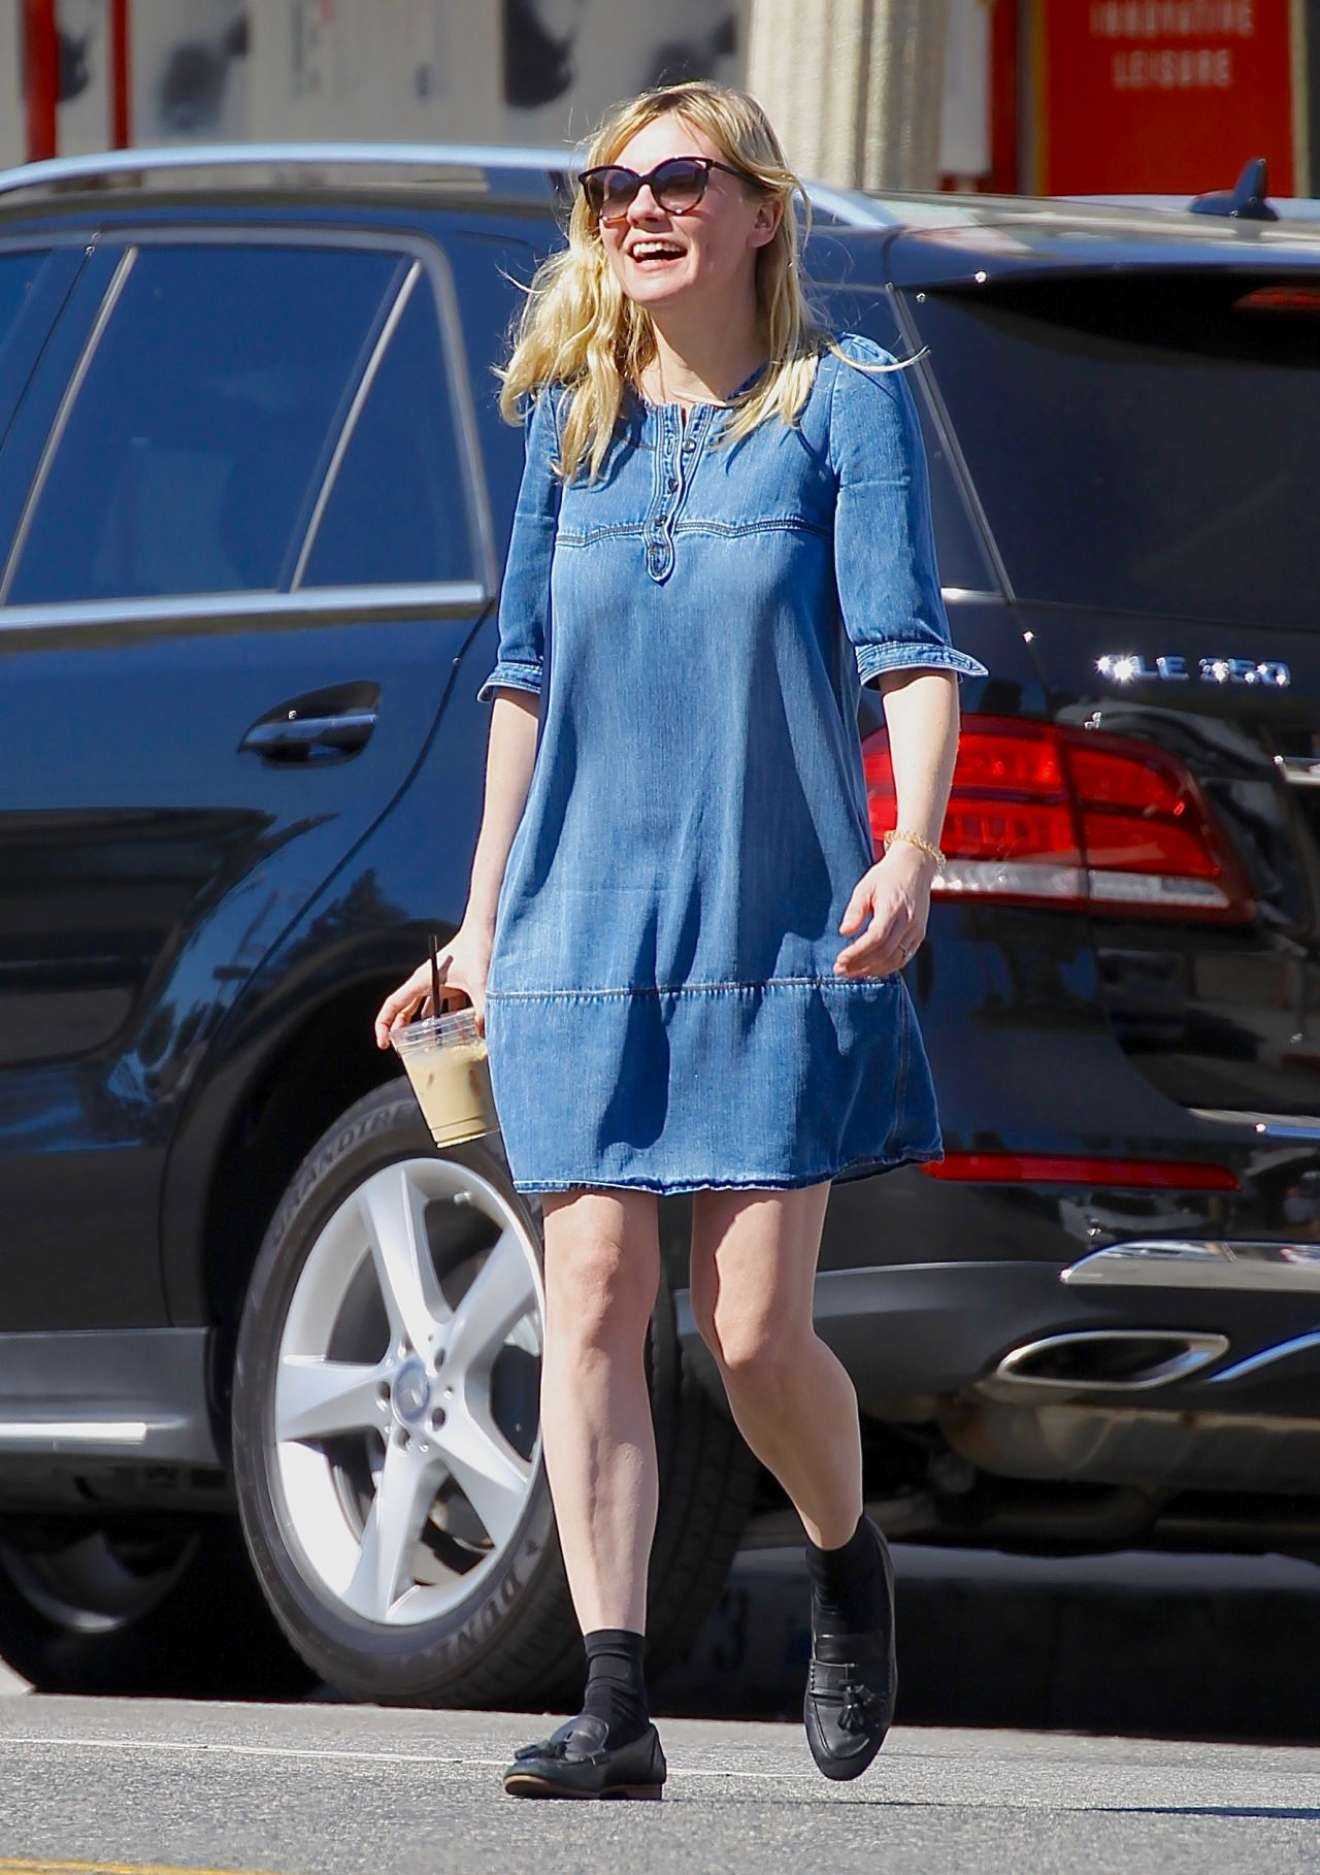 Kirsten dunst out in studio city naked (98 images)